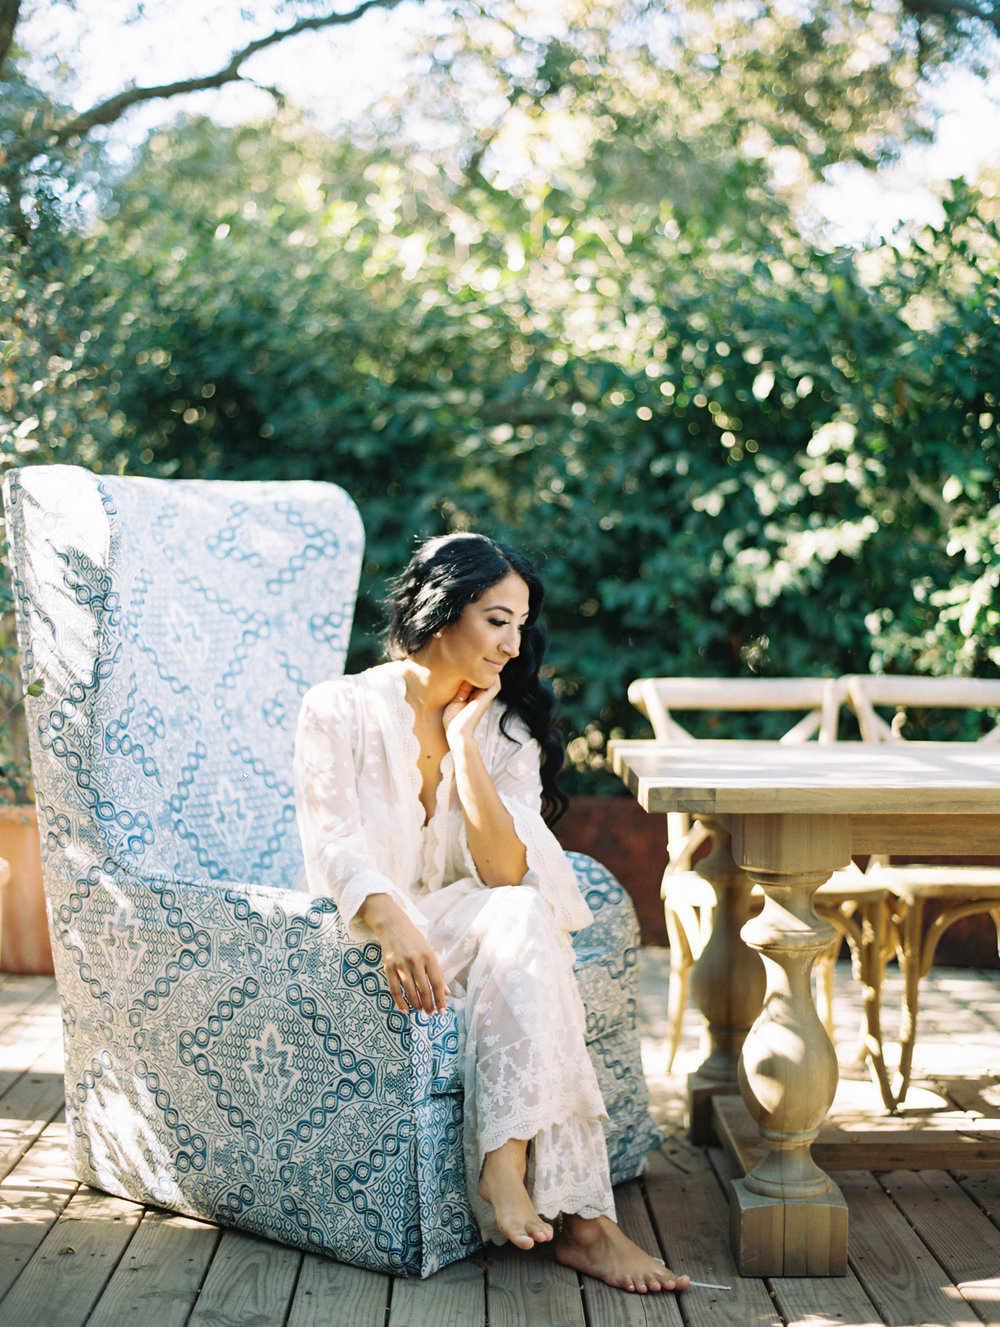 112-fine-art-film-kristopher-veronica-malibu-wedding-brumley-wells-X4.jpg